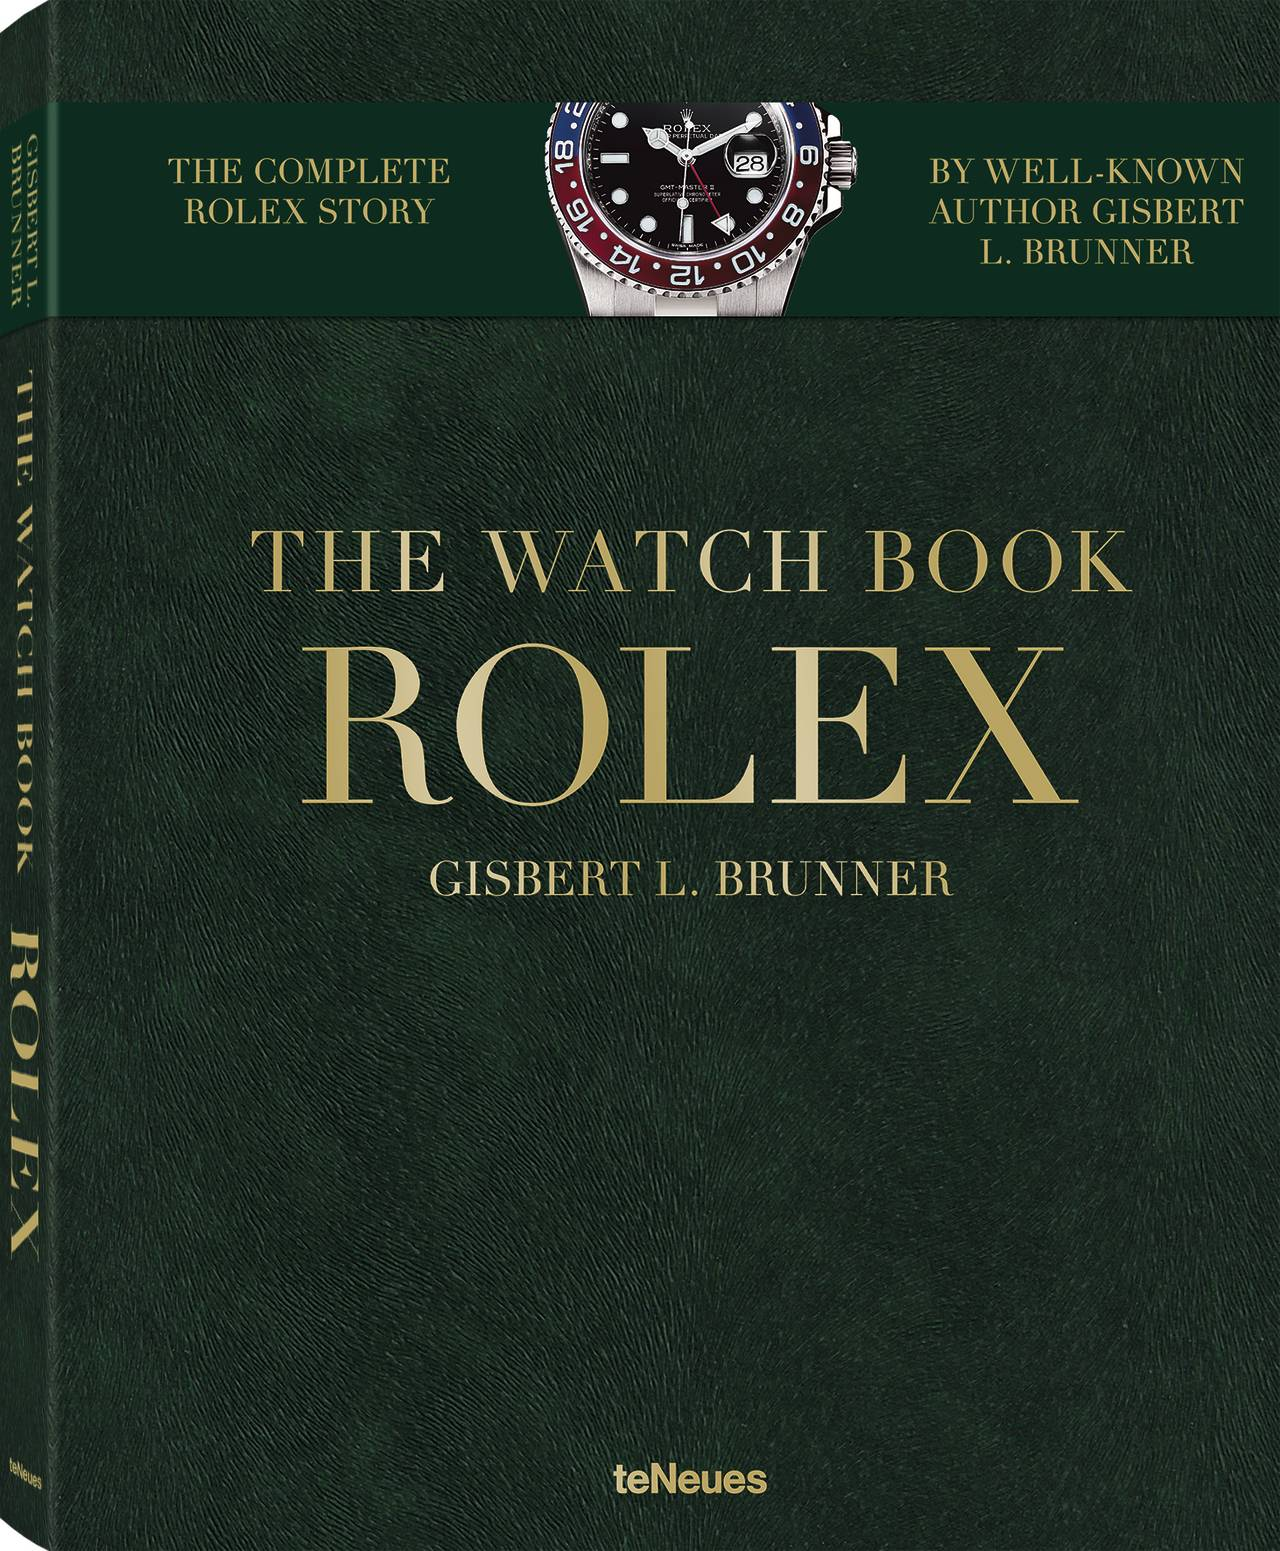 © THE WATCH BOOK ROLEX by Gisbert L. Brunner, published by teNeues, www.teneues.com. Photo © Courtesy of Rolex